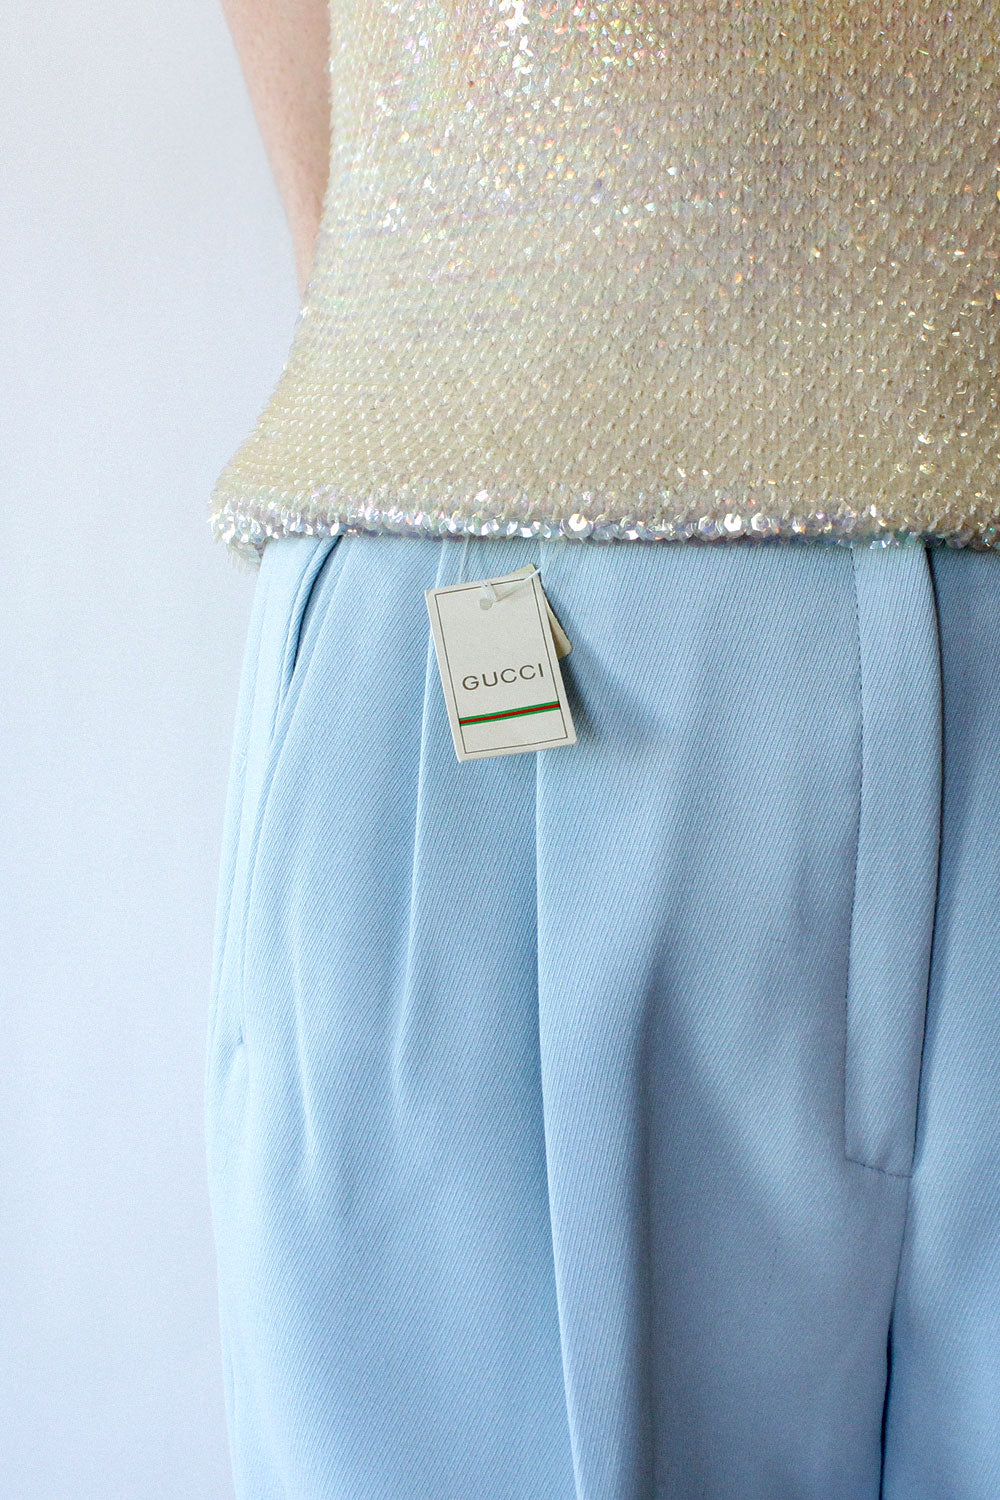 Sky Blue Gucci Trousers S/M